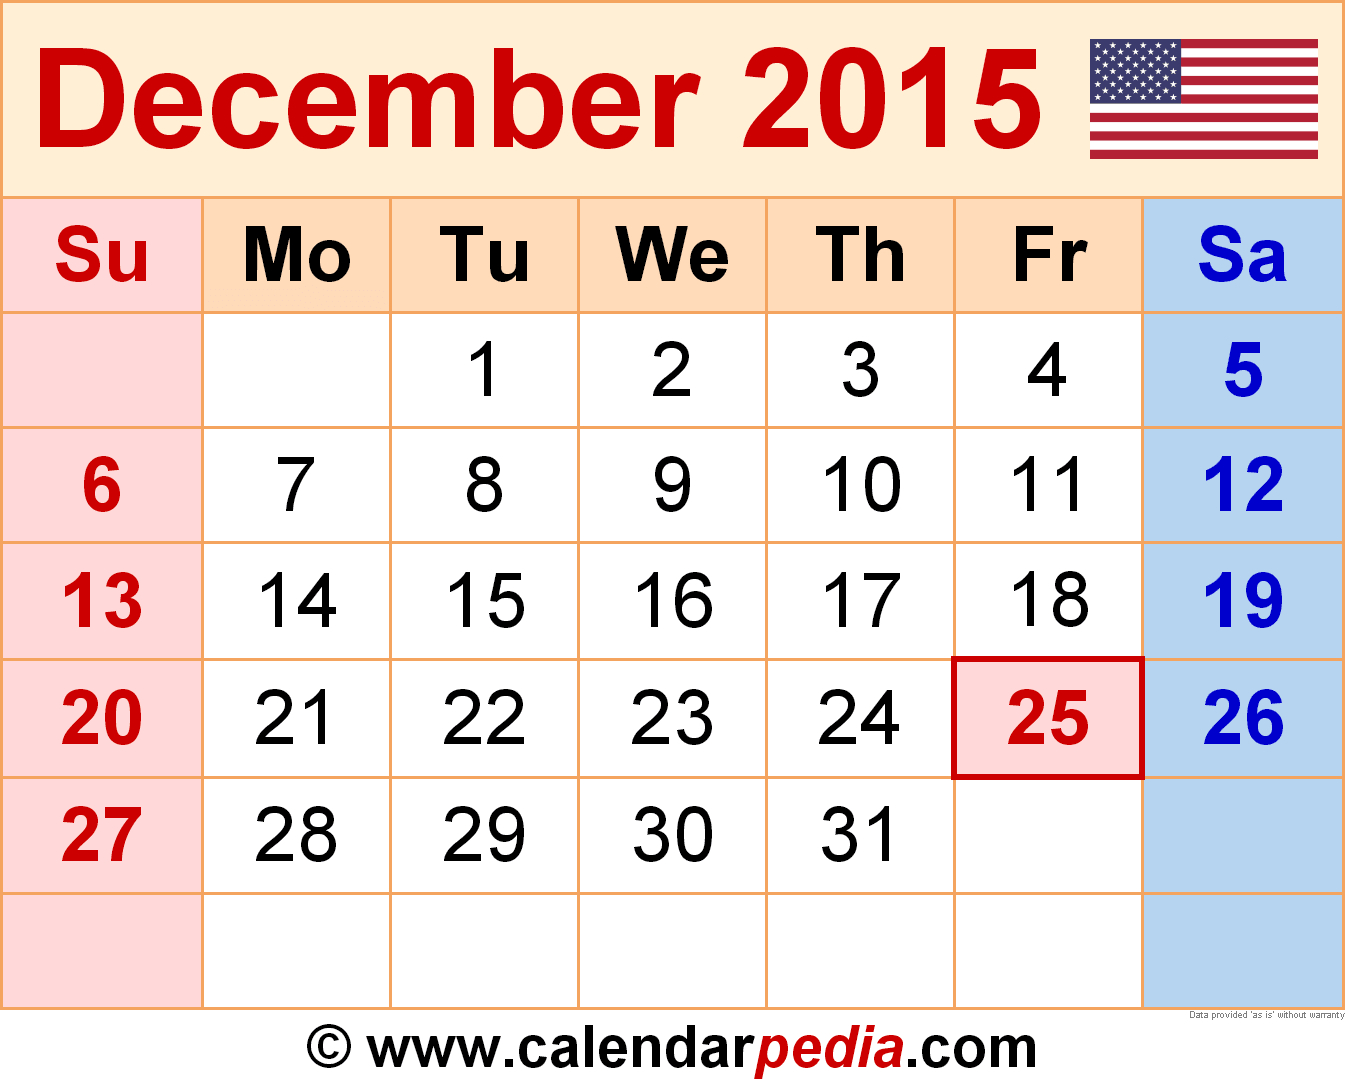 December 2015 Calendars For Word, Excel & Pdf | Free with December 2015 Calendar Printable